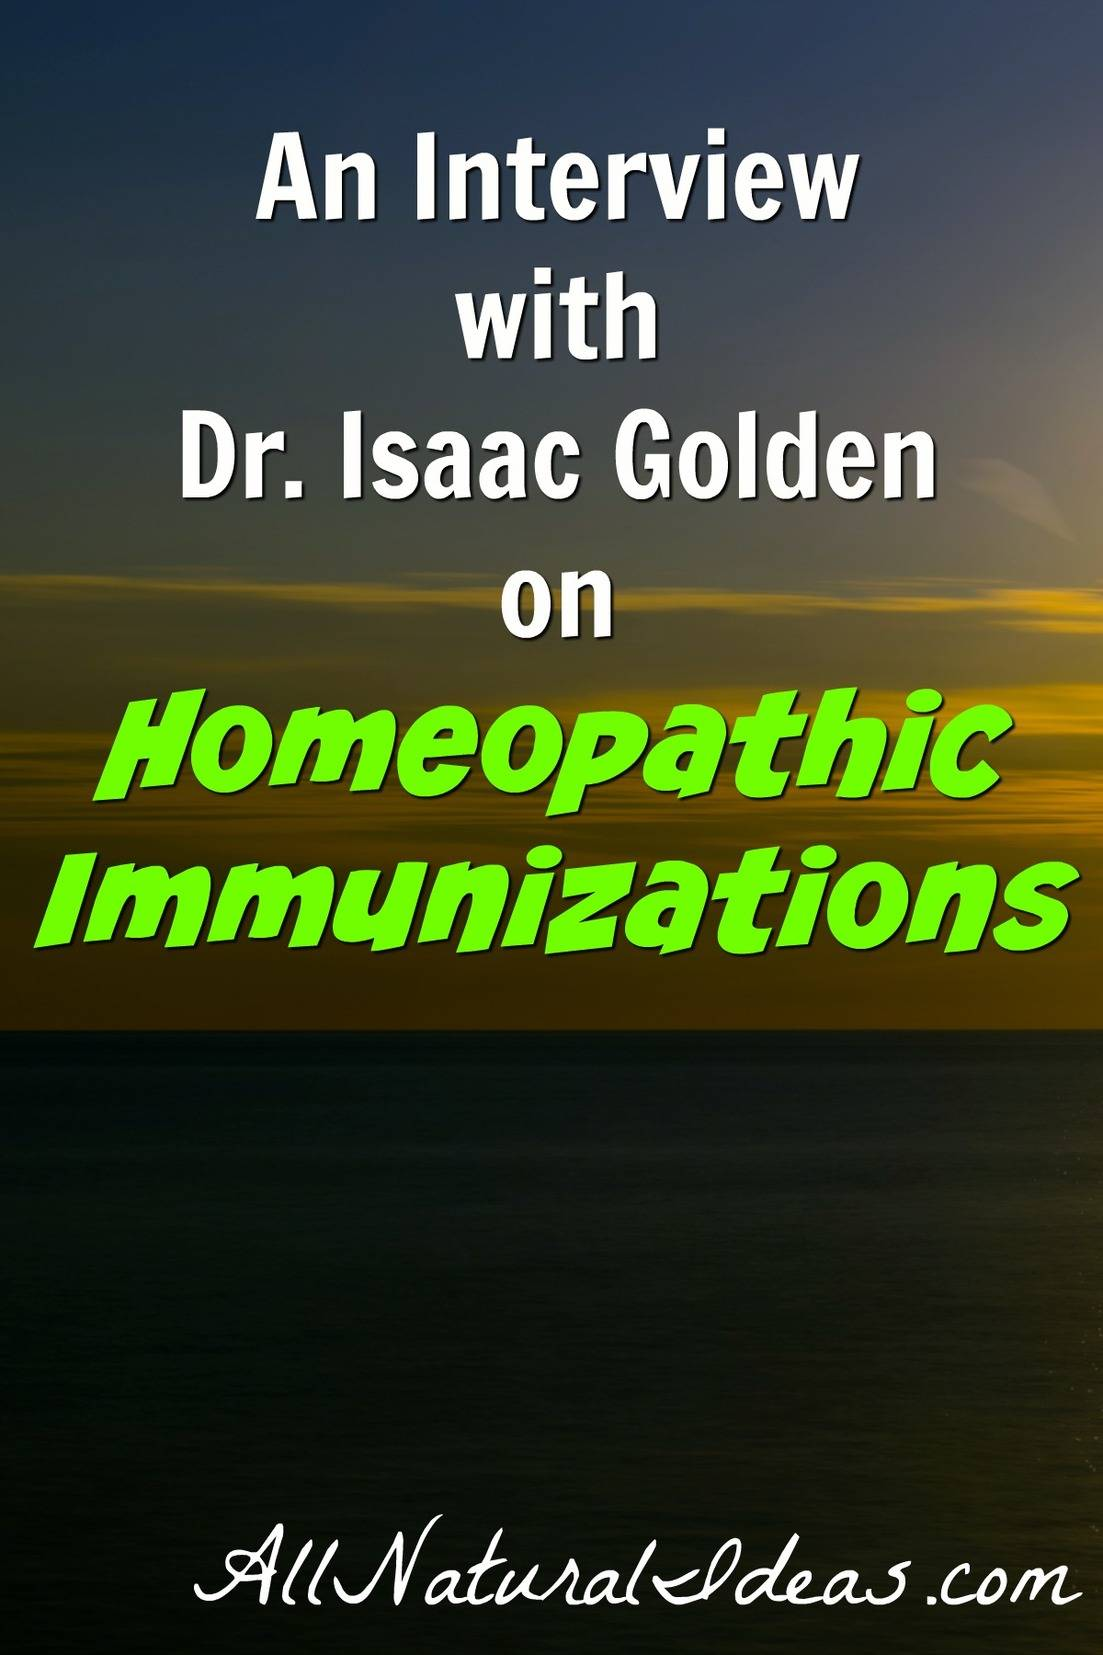 Dr. Isaac Golden is a well known authority in homeoprophylaxis, a safer alternative to vaccines. In this interview, he provides information on the program. | allnaturalideas.com